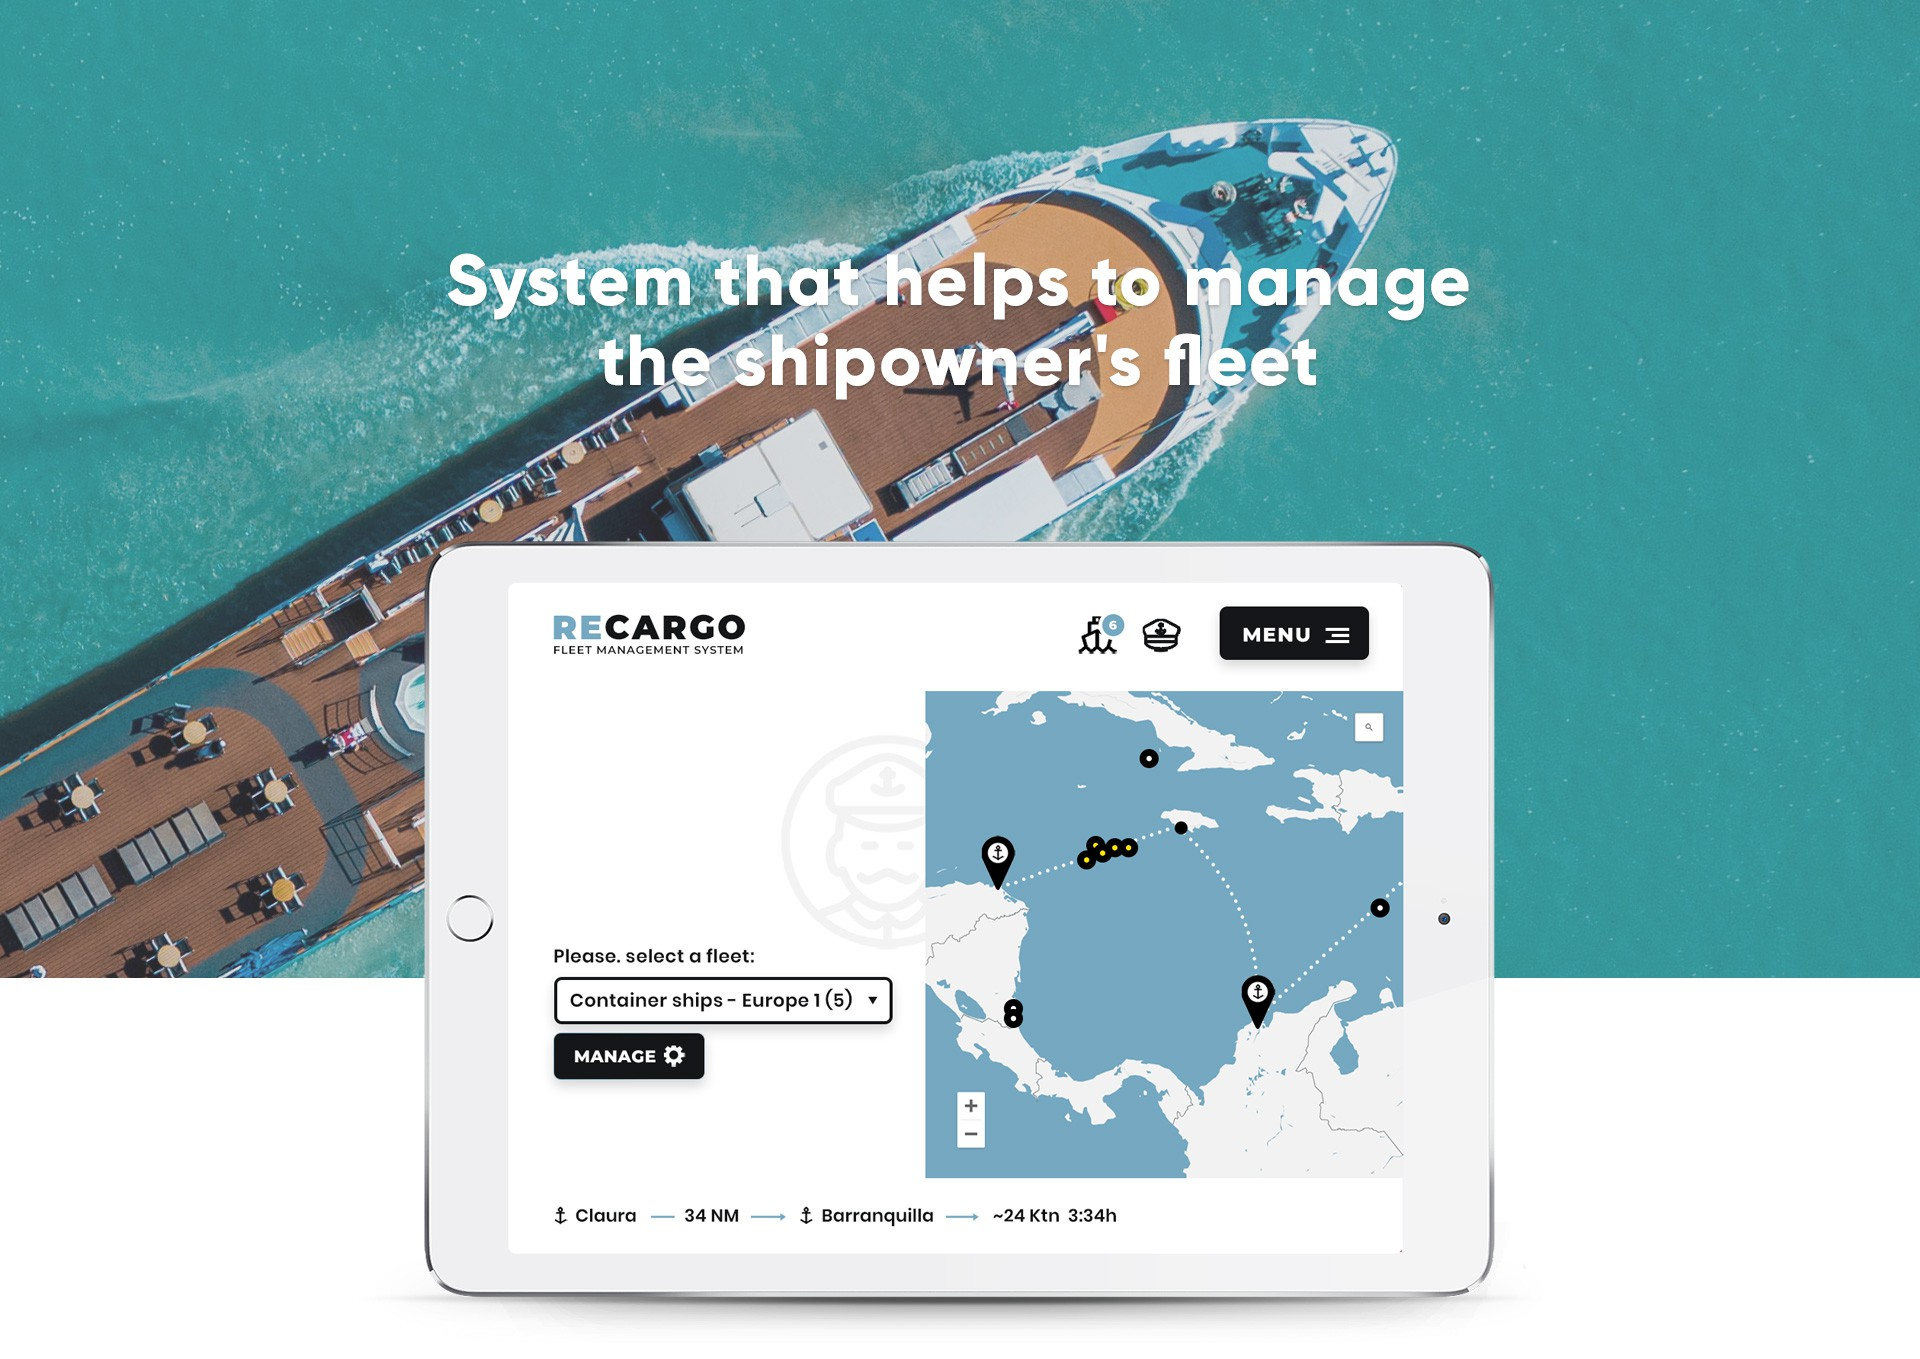 System that simplifies fleet management